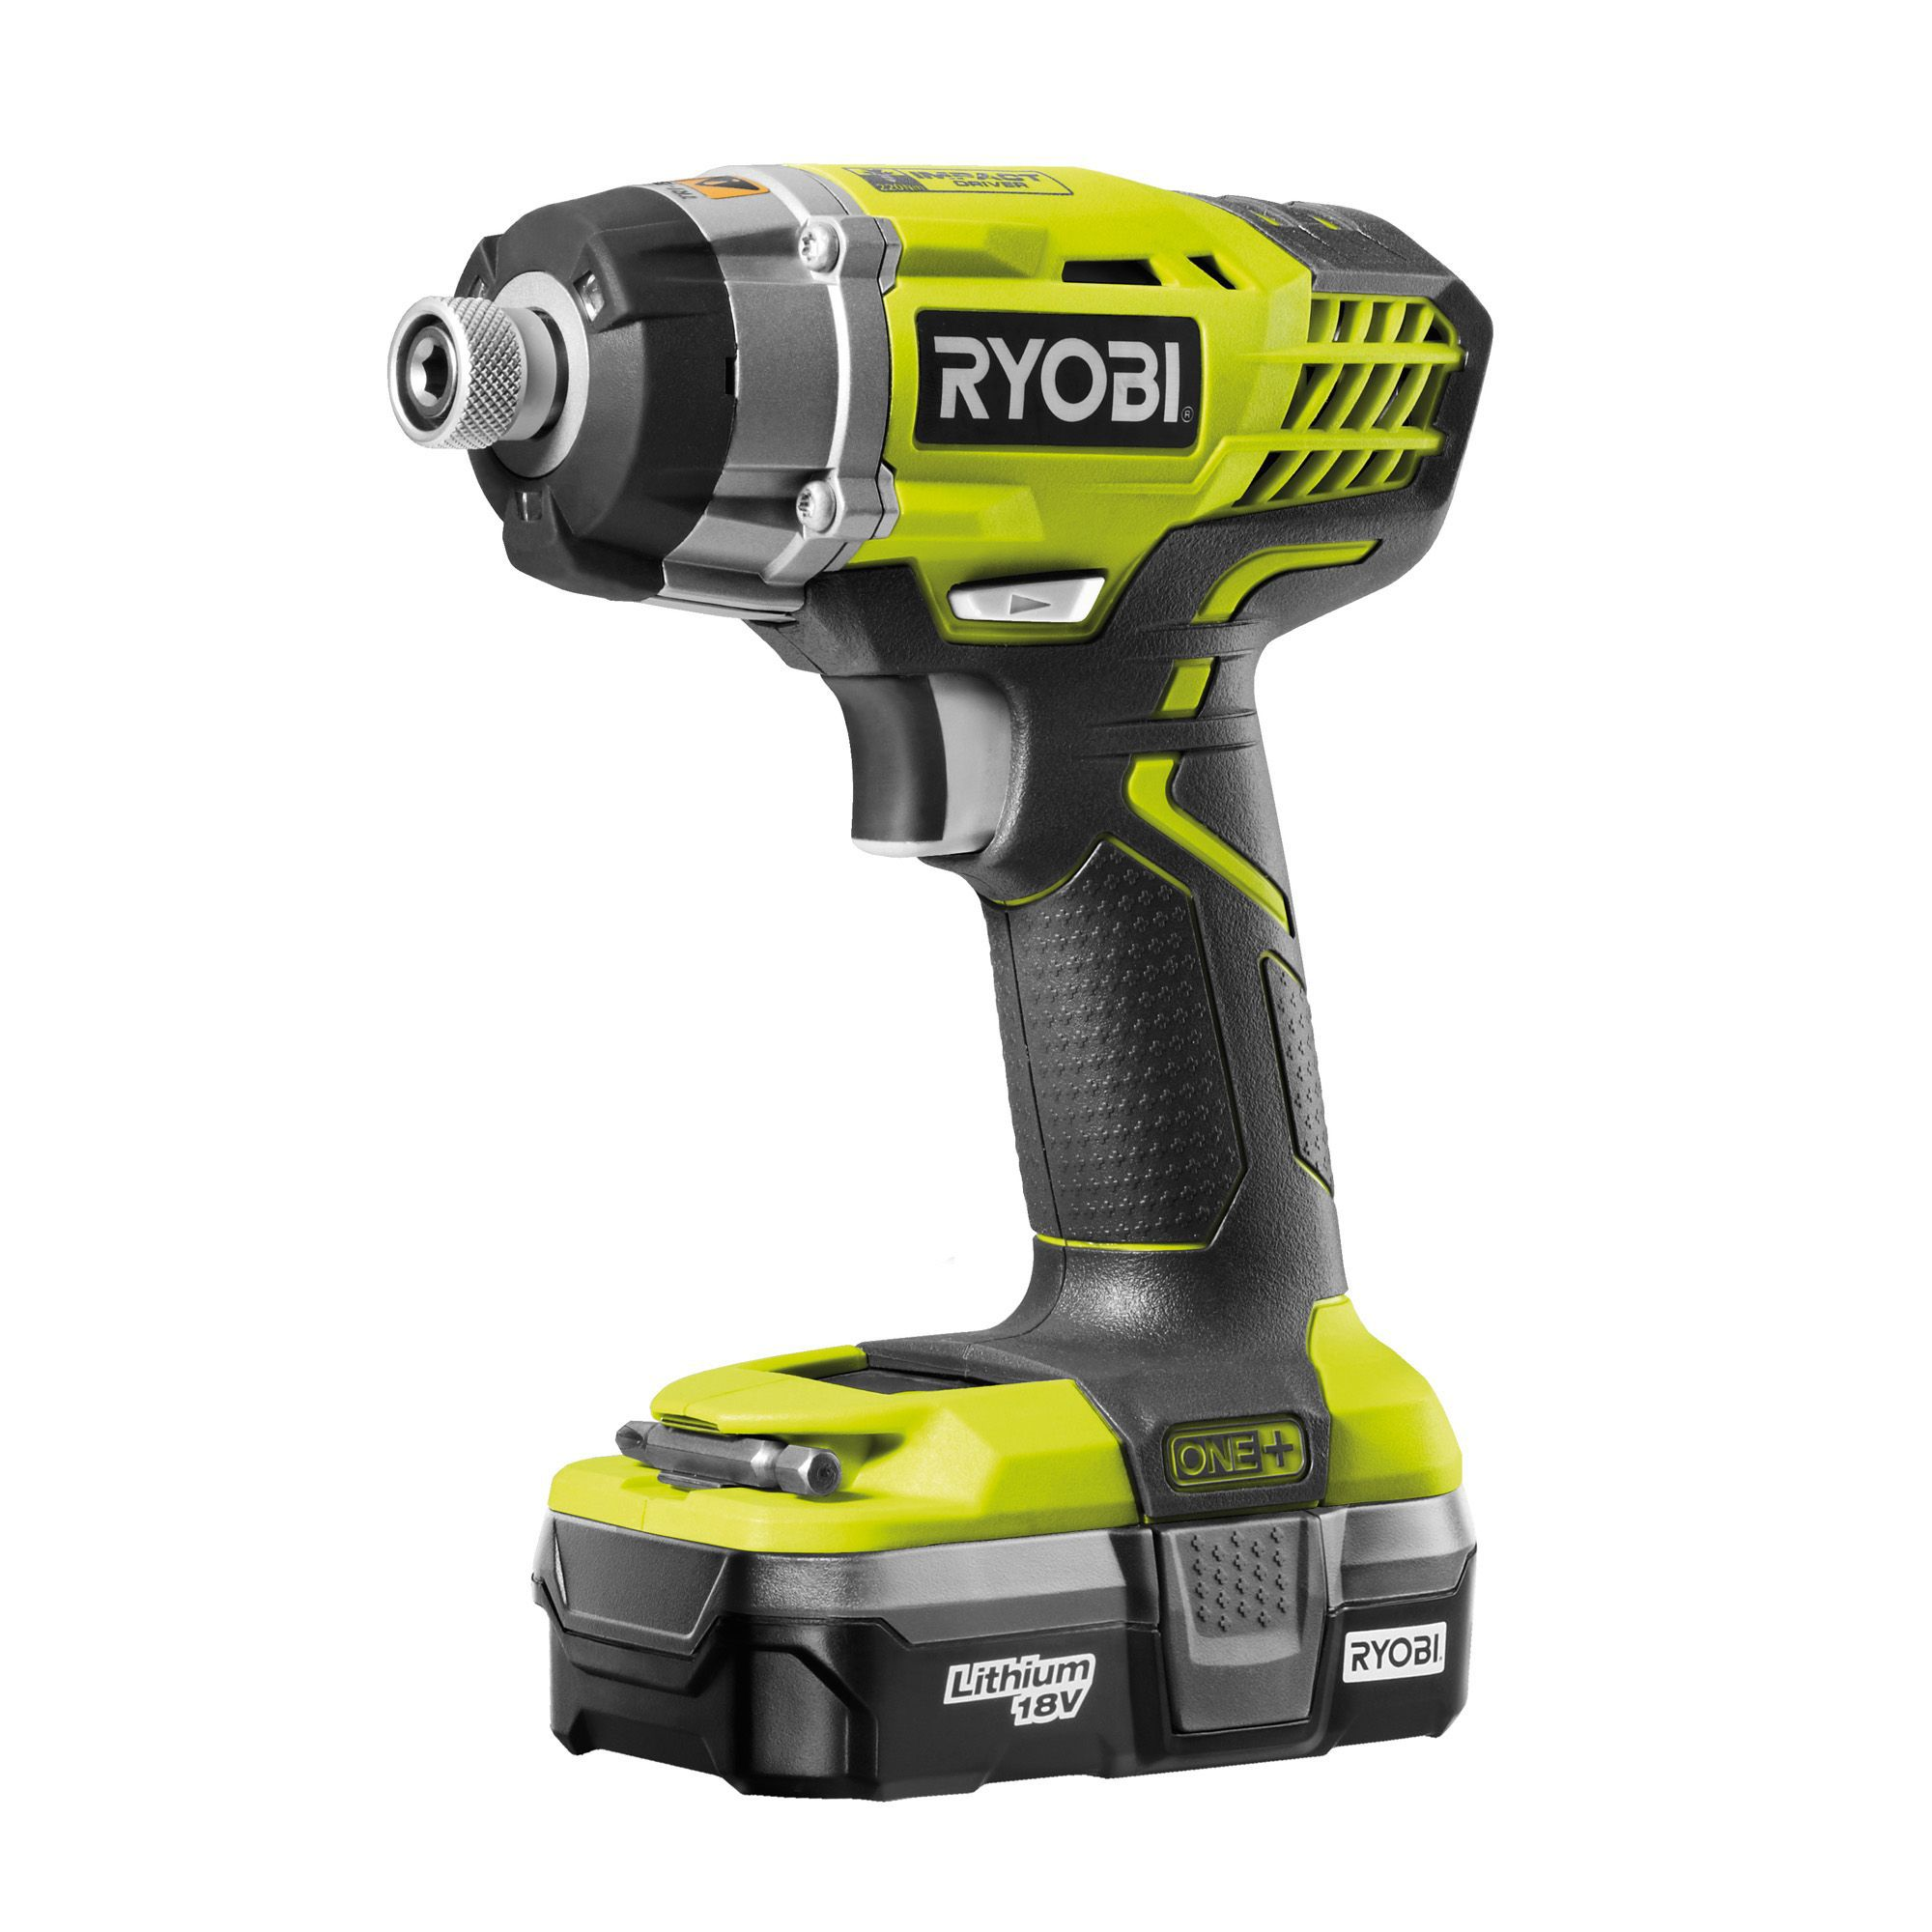 ryobi one cordless 18v 1 3ah li ion impact driver 1. Black Bedroom Furniture Sets. Home Design Ideas